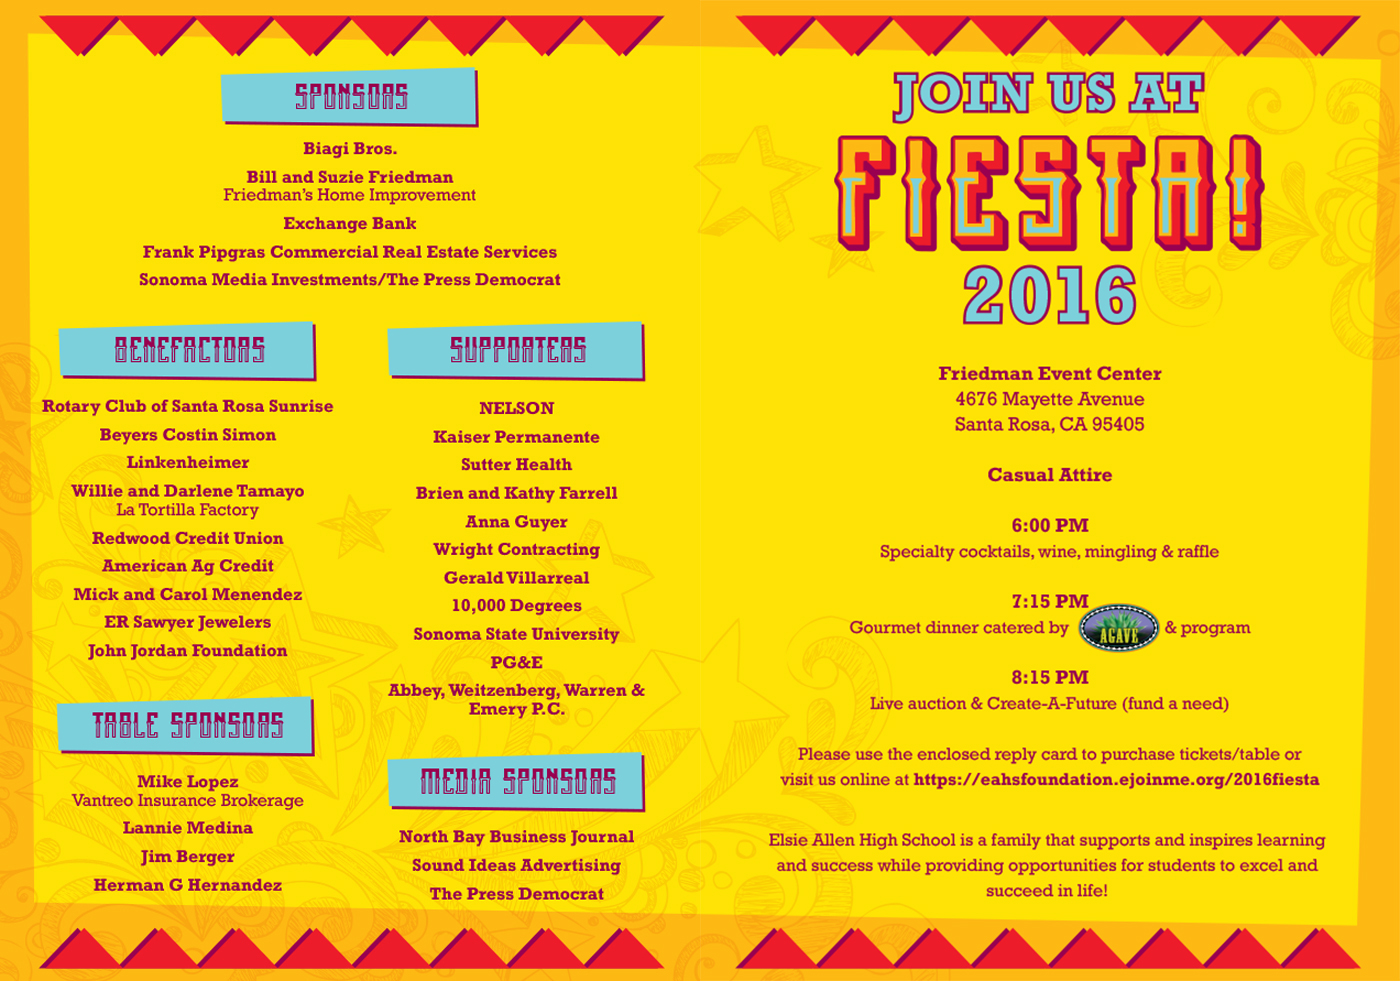 EAHSF-Fiesta-Graphic-Design-2